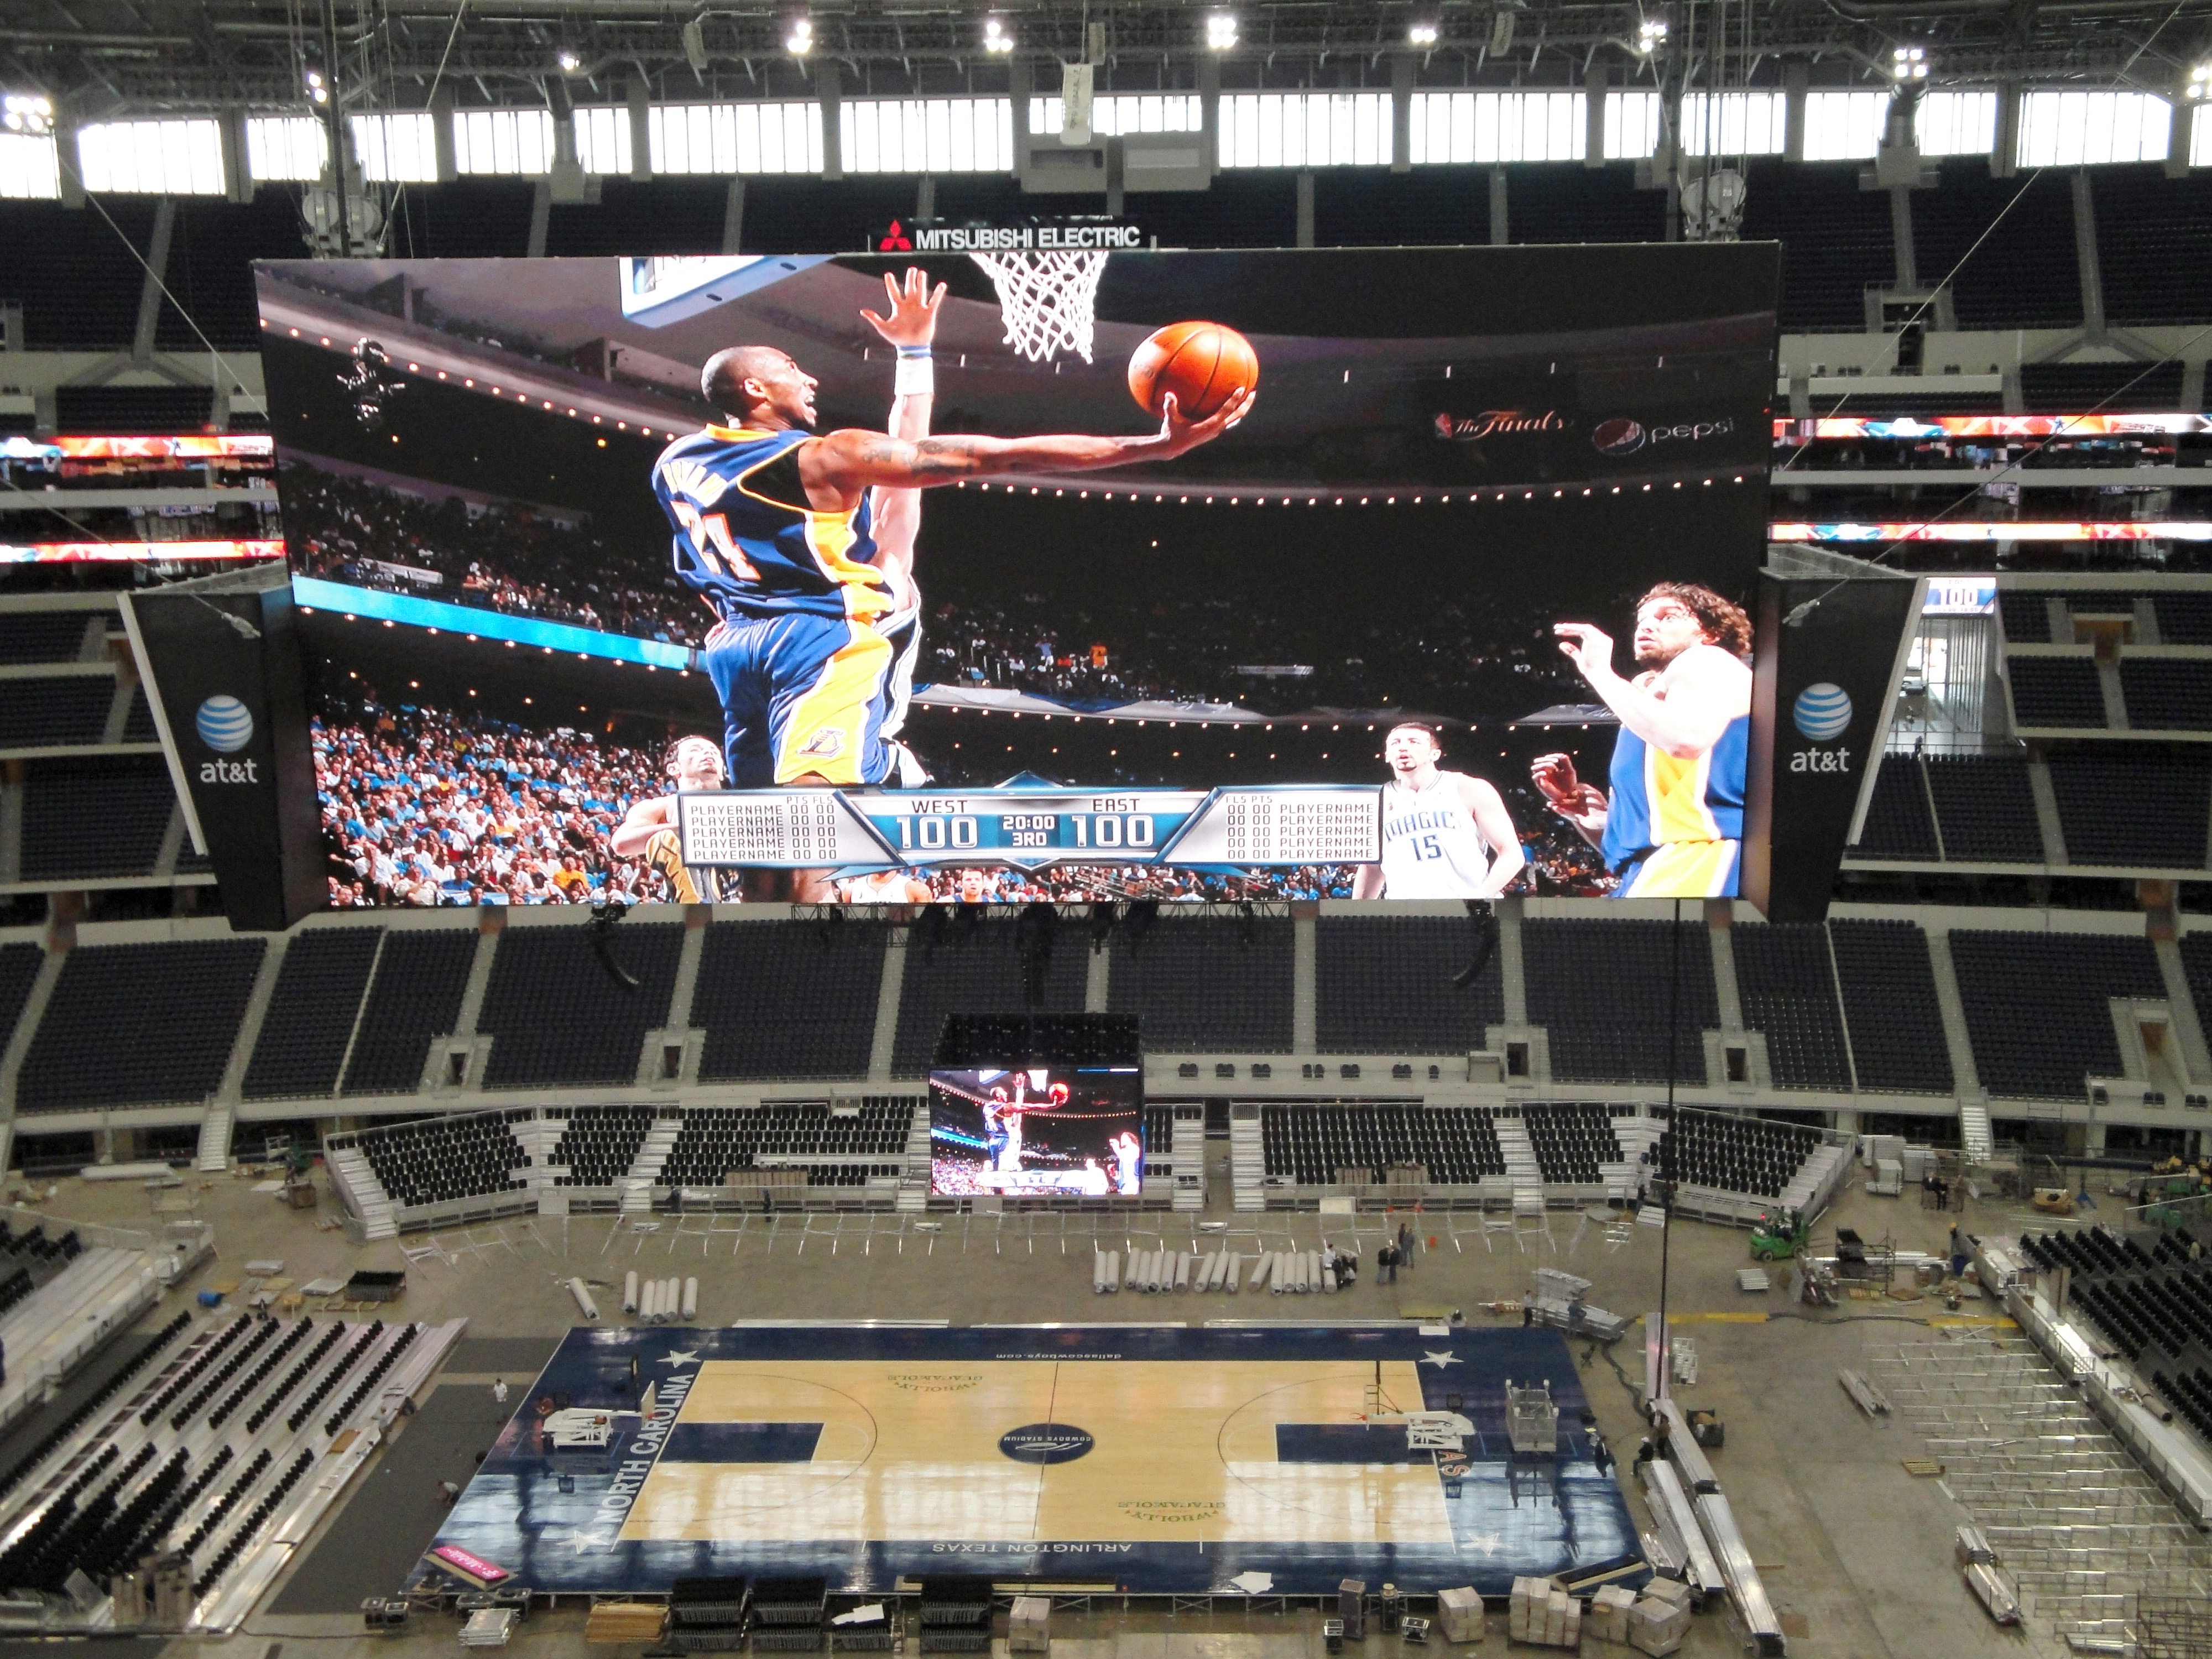 http://upload.wikimedia.org/wikipedia/commons/f/f6/Cowboys_Stadium_configured_for_basketball.jpg